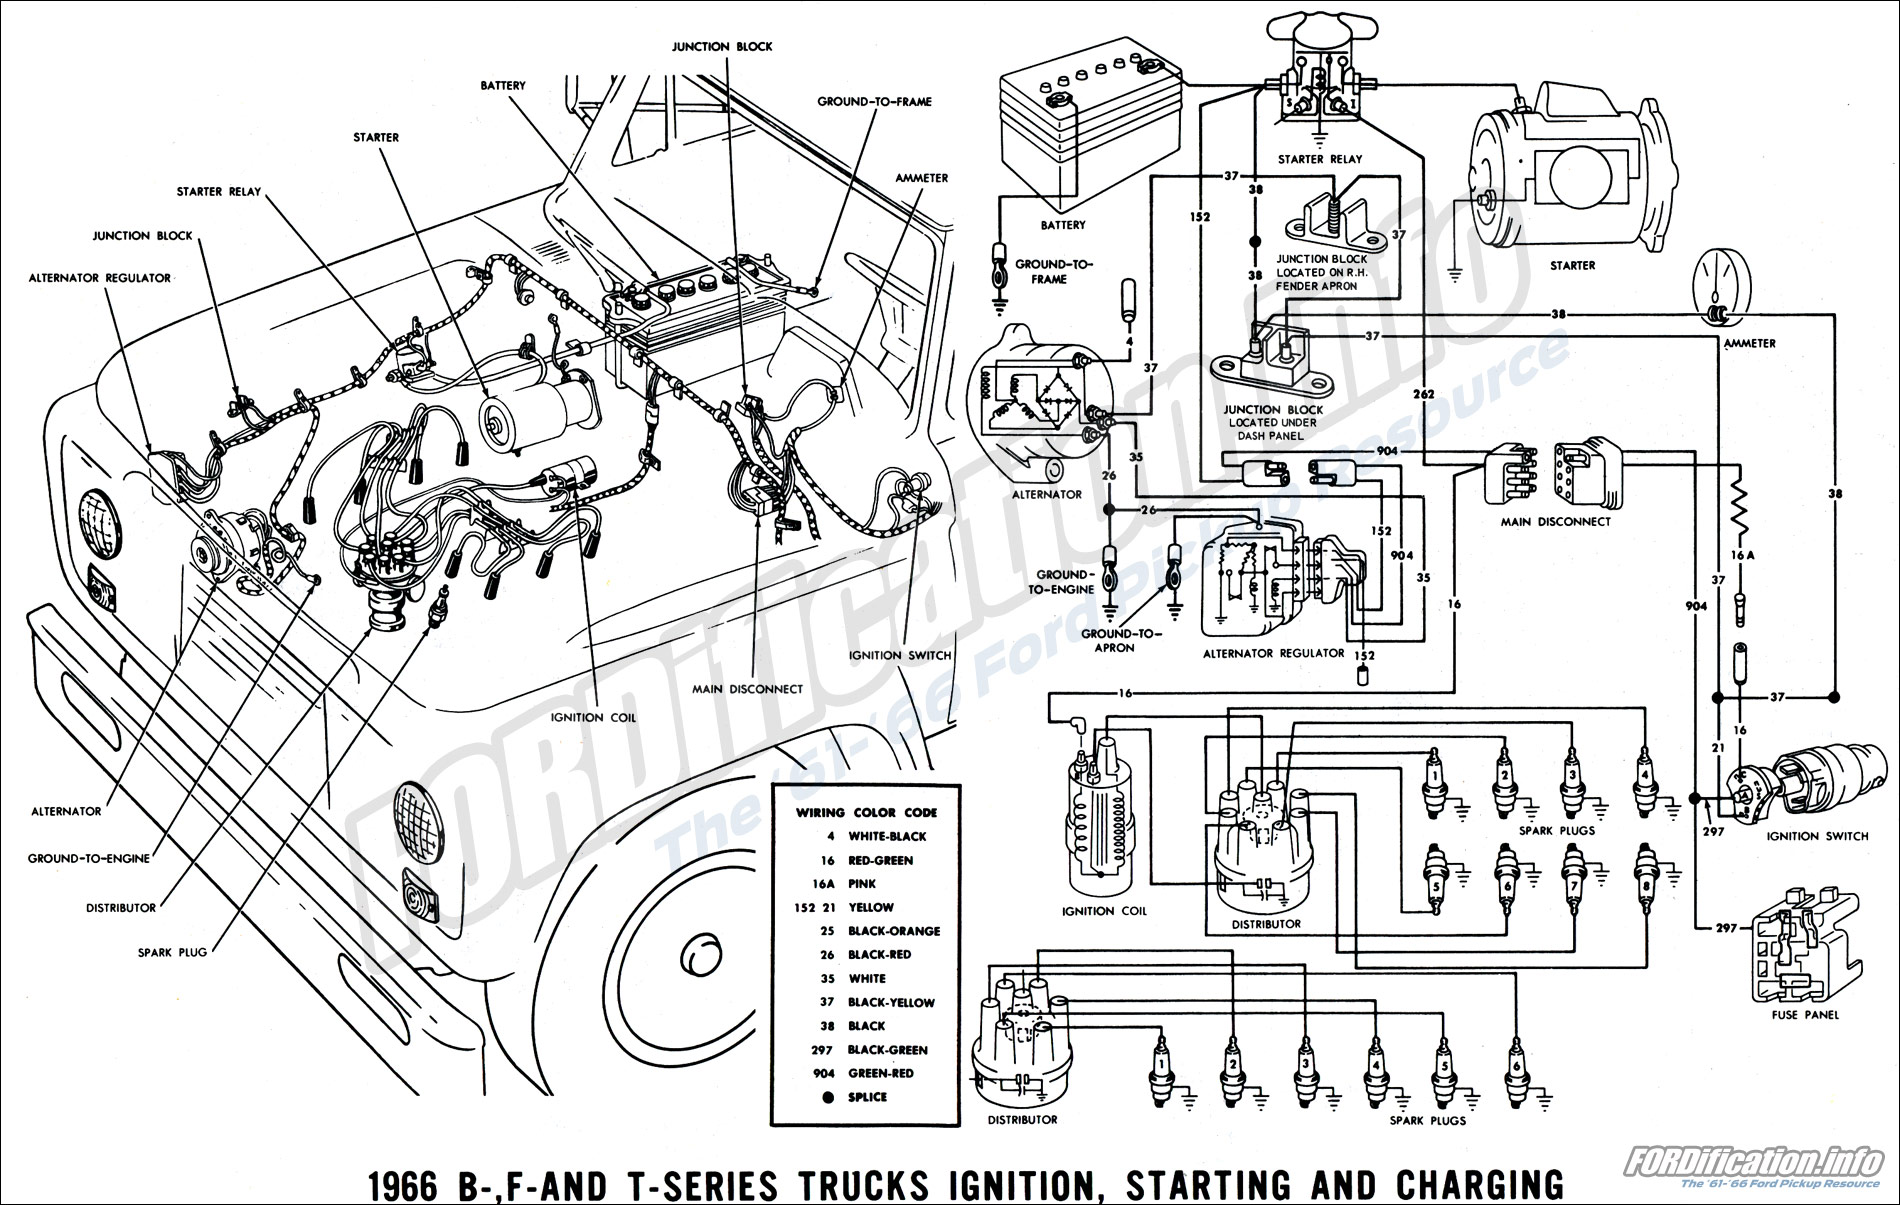 1966 Ford Pickup Wiring Diagram Schematics 1941 Dodge Truck Diagrams Fordification Info The 61 66 1960 F100